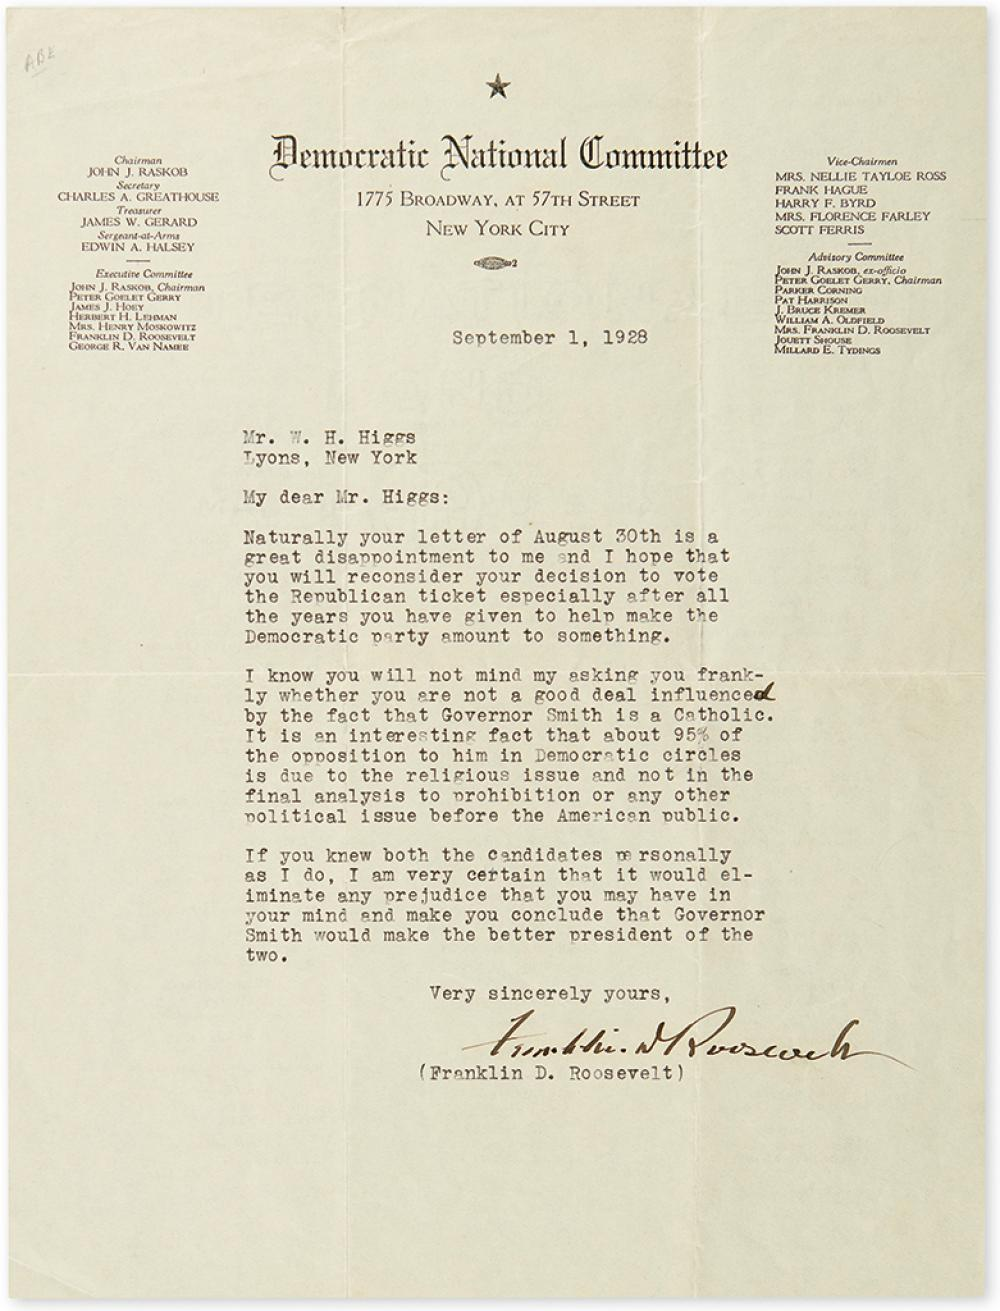 ROOSEVELT, FRANKLIN D. Typed Letter Signed, to Mr. W.H. Higgs,